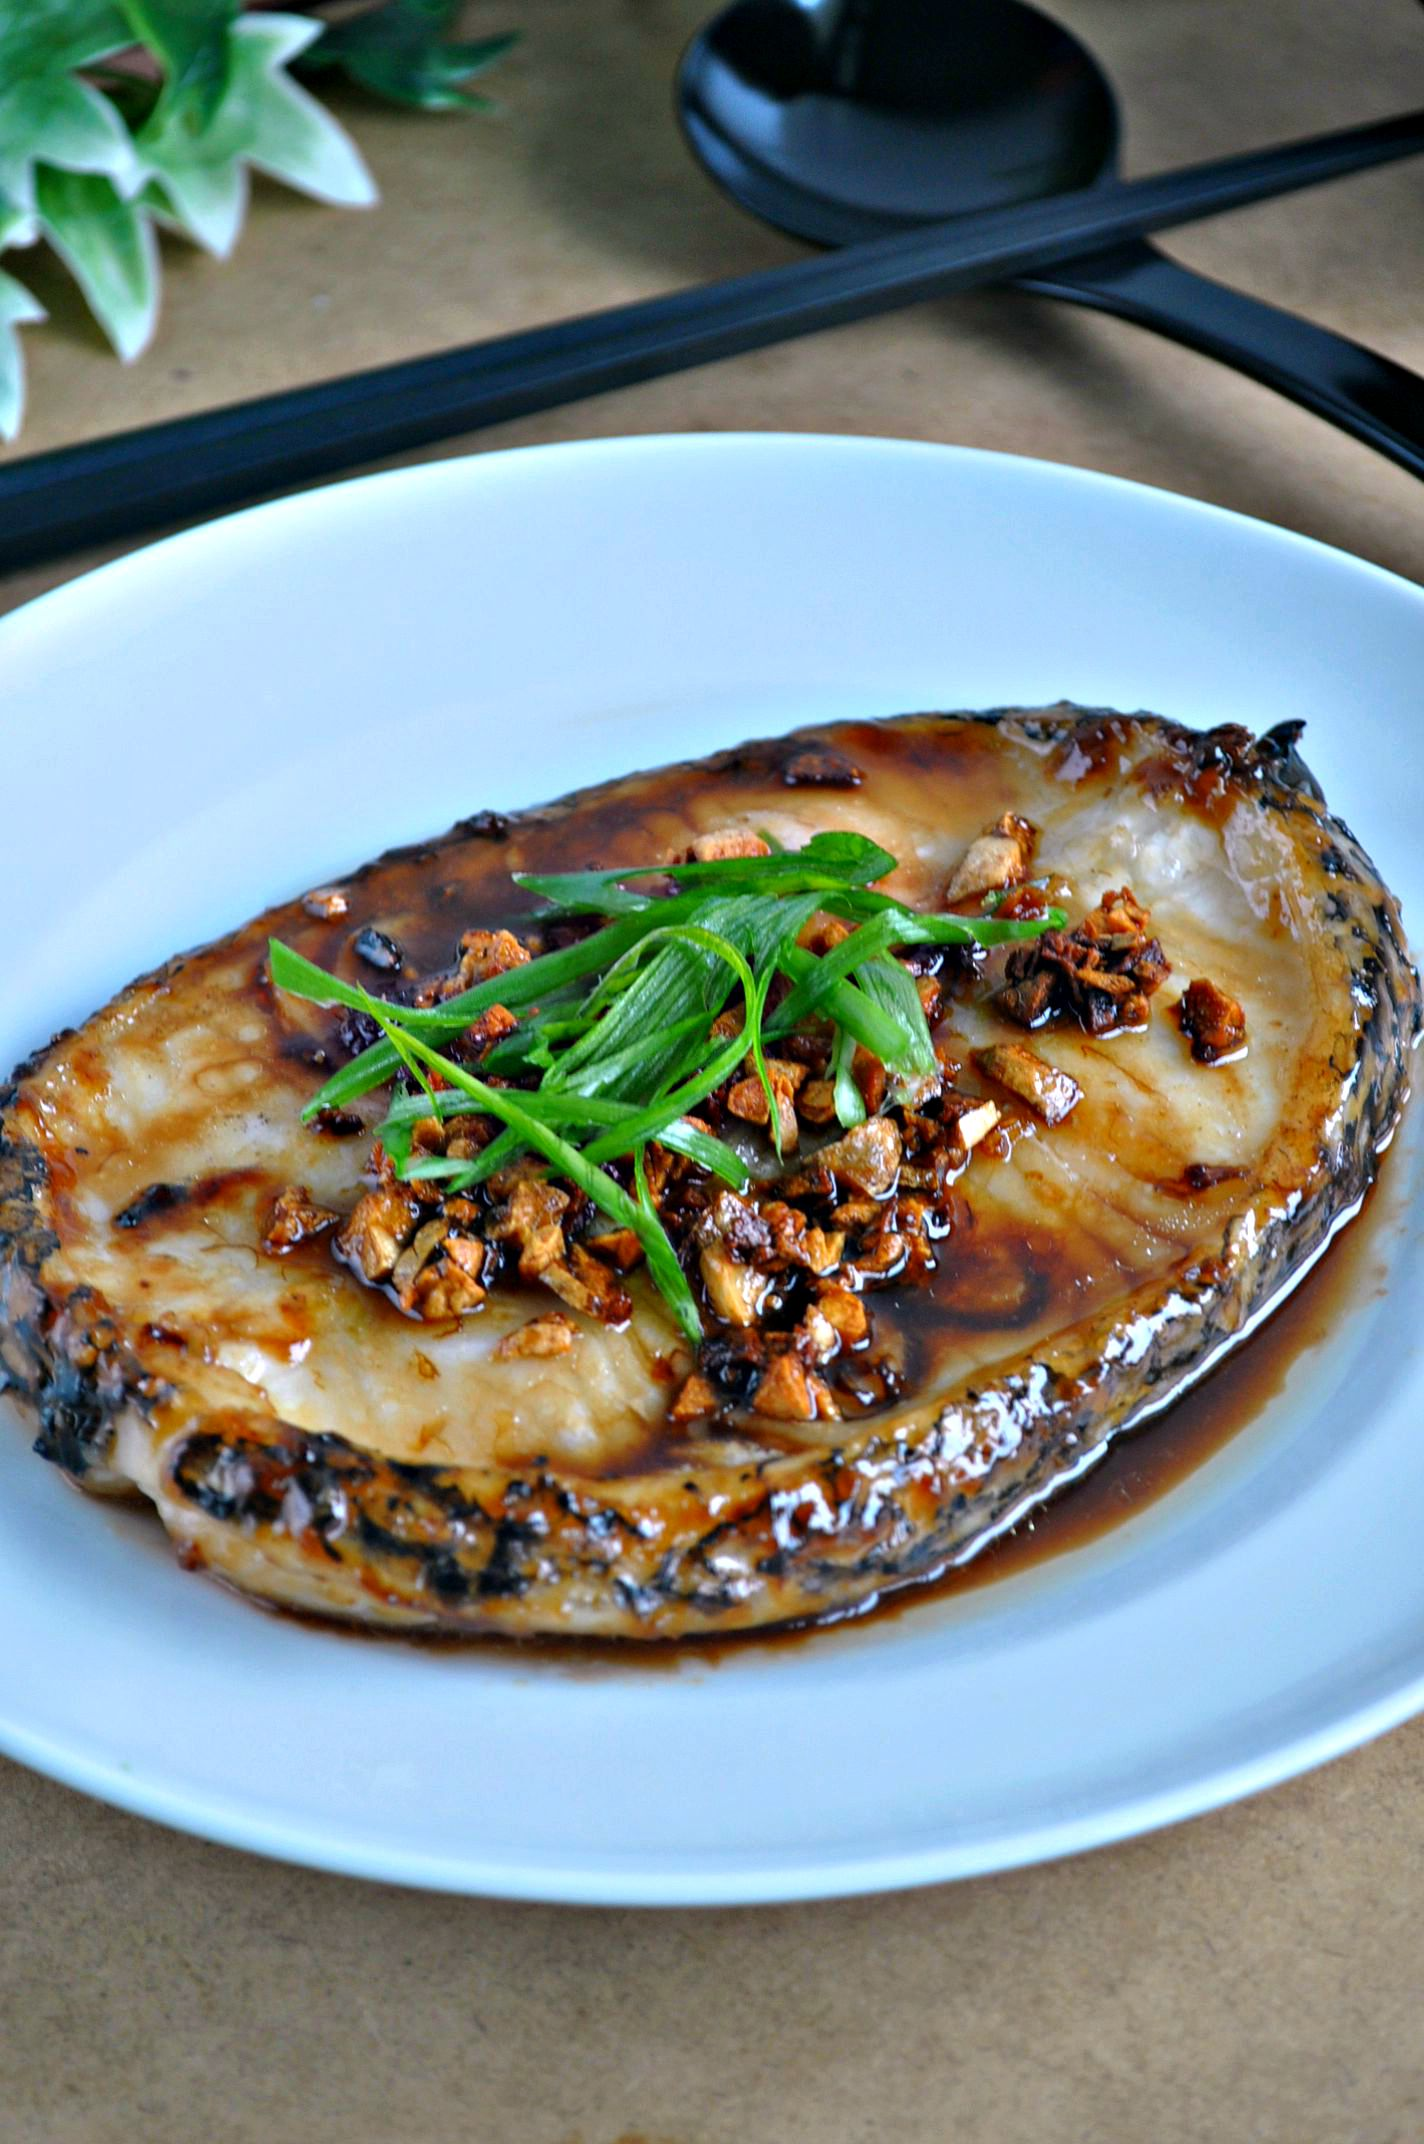 Grilled cod fish in garlic crisps oyster sauce for Grilled cod fish recipe